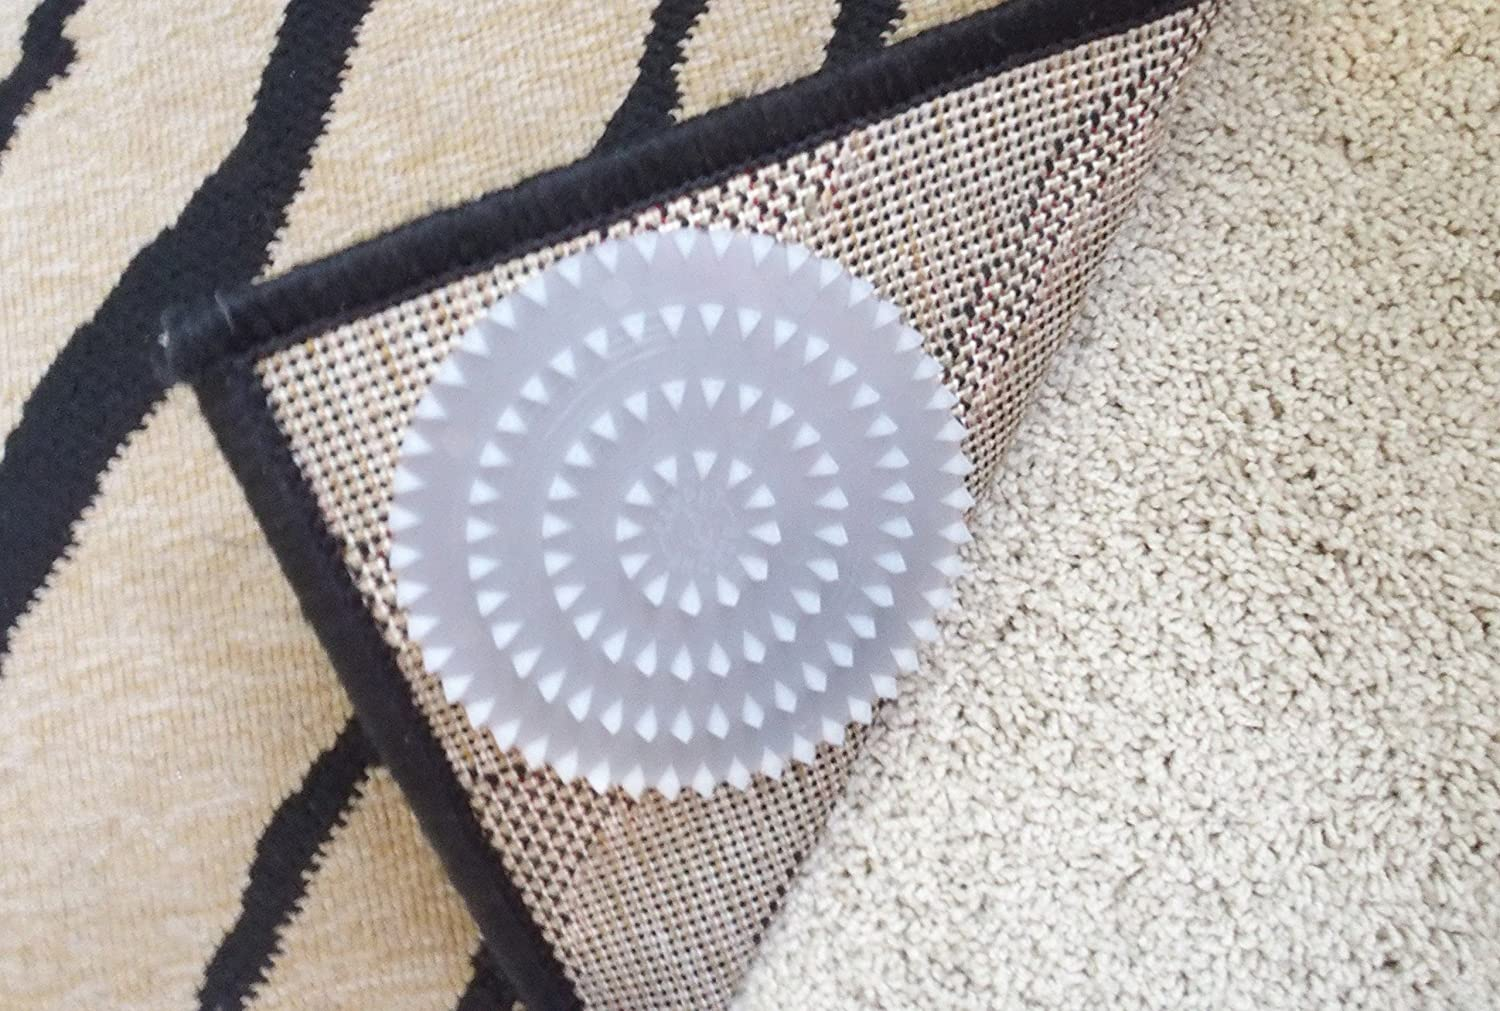 Non Slip Rug Pads For Rugs On Carpet 8 Pack Designed For Rug On Carpet Anti Slip Limits Medium Large Rugs Exercise Door Mats From Moving On Carpet Includes 8 Spiked Plastic Adhesive Rug Pads